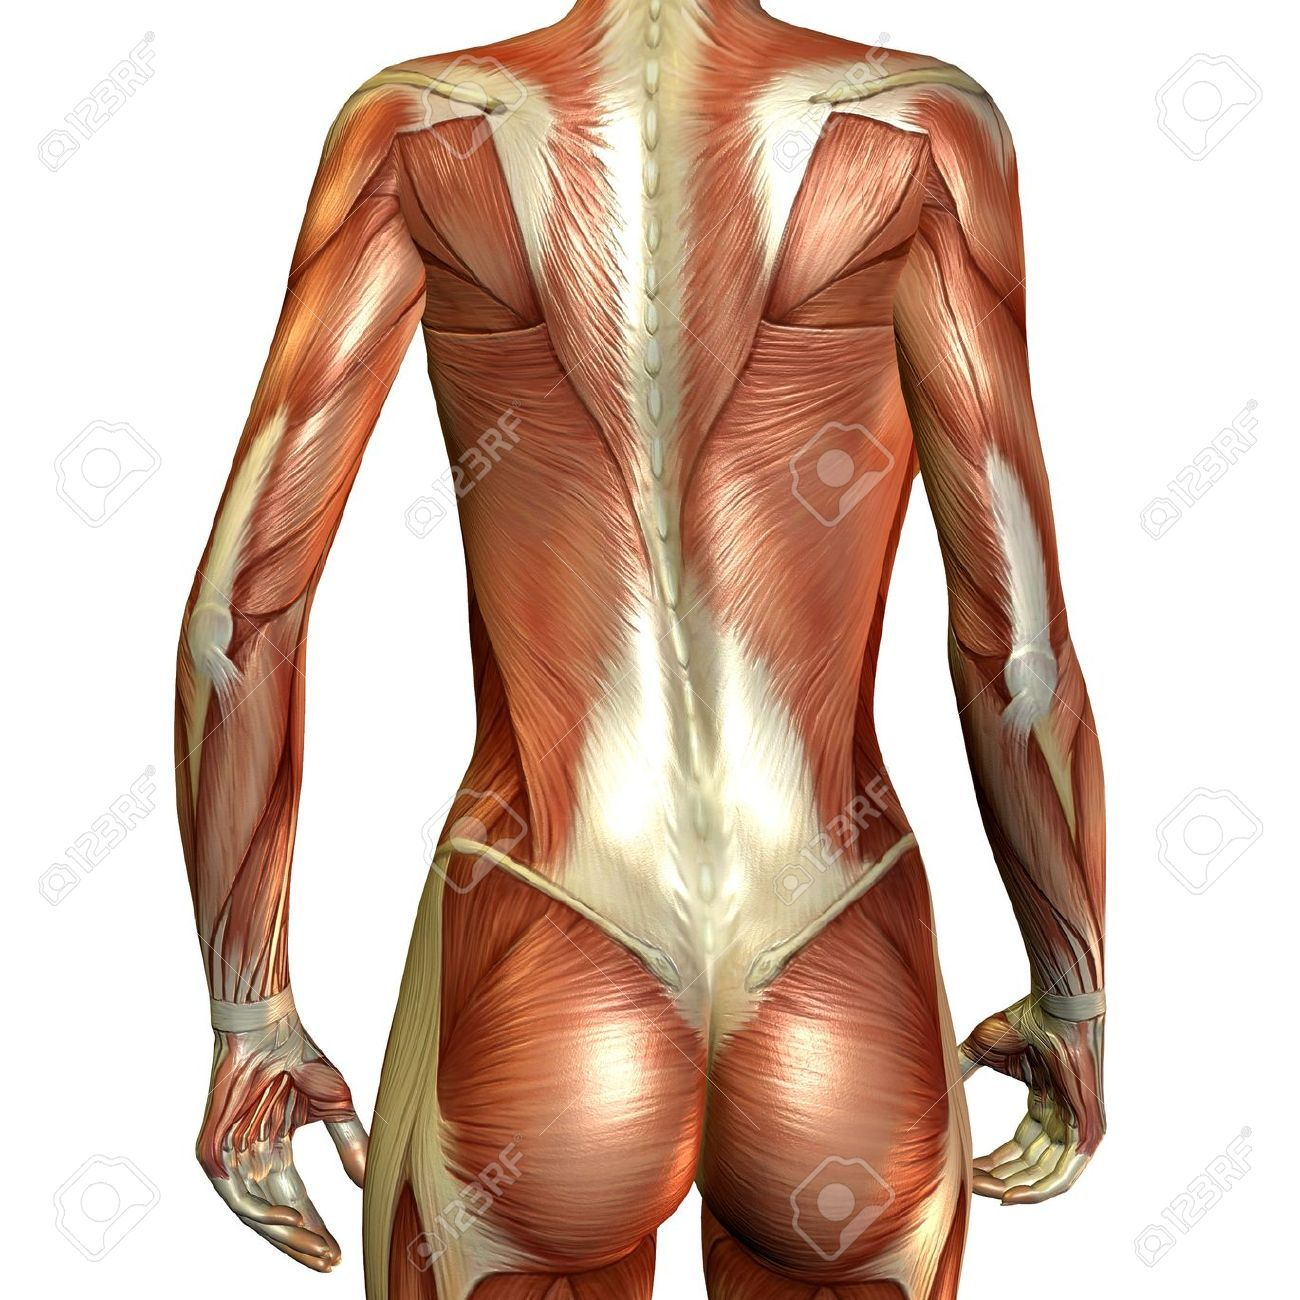 female back muscle diagram - google search | body painting, Muscles